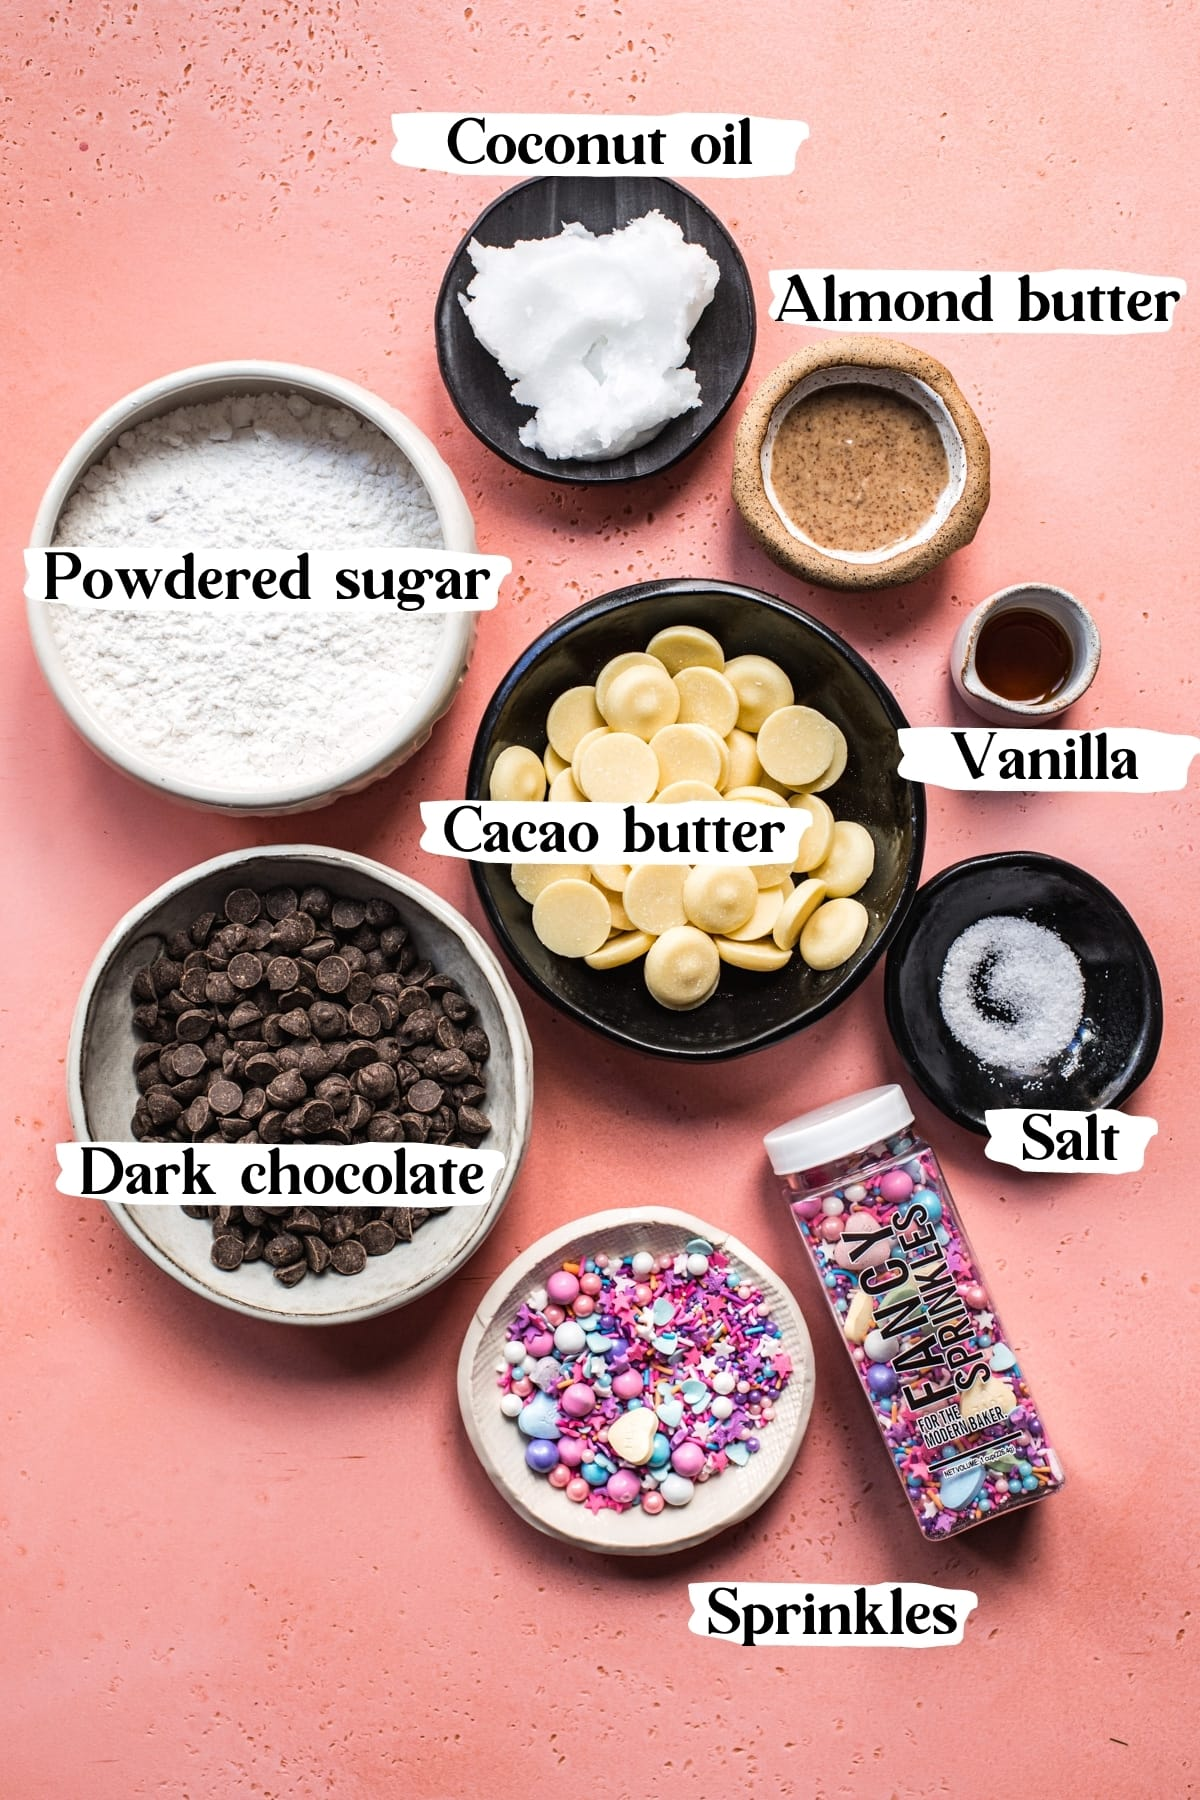 overhead view of ingredients for vegan white chocolate bark, including cacao butter, dark chocolate, coconut oil.